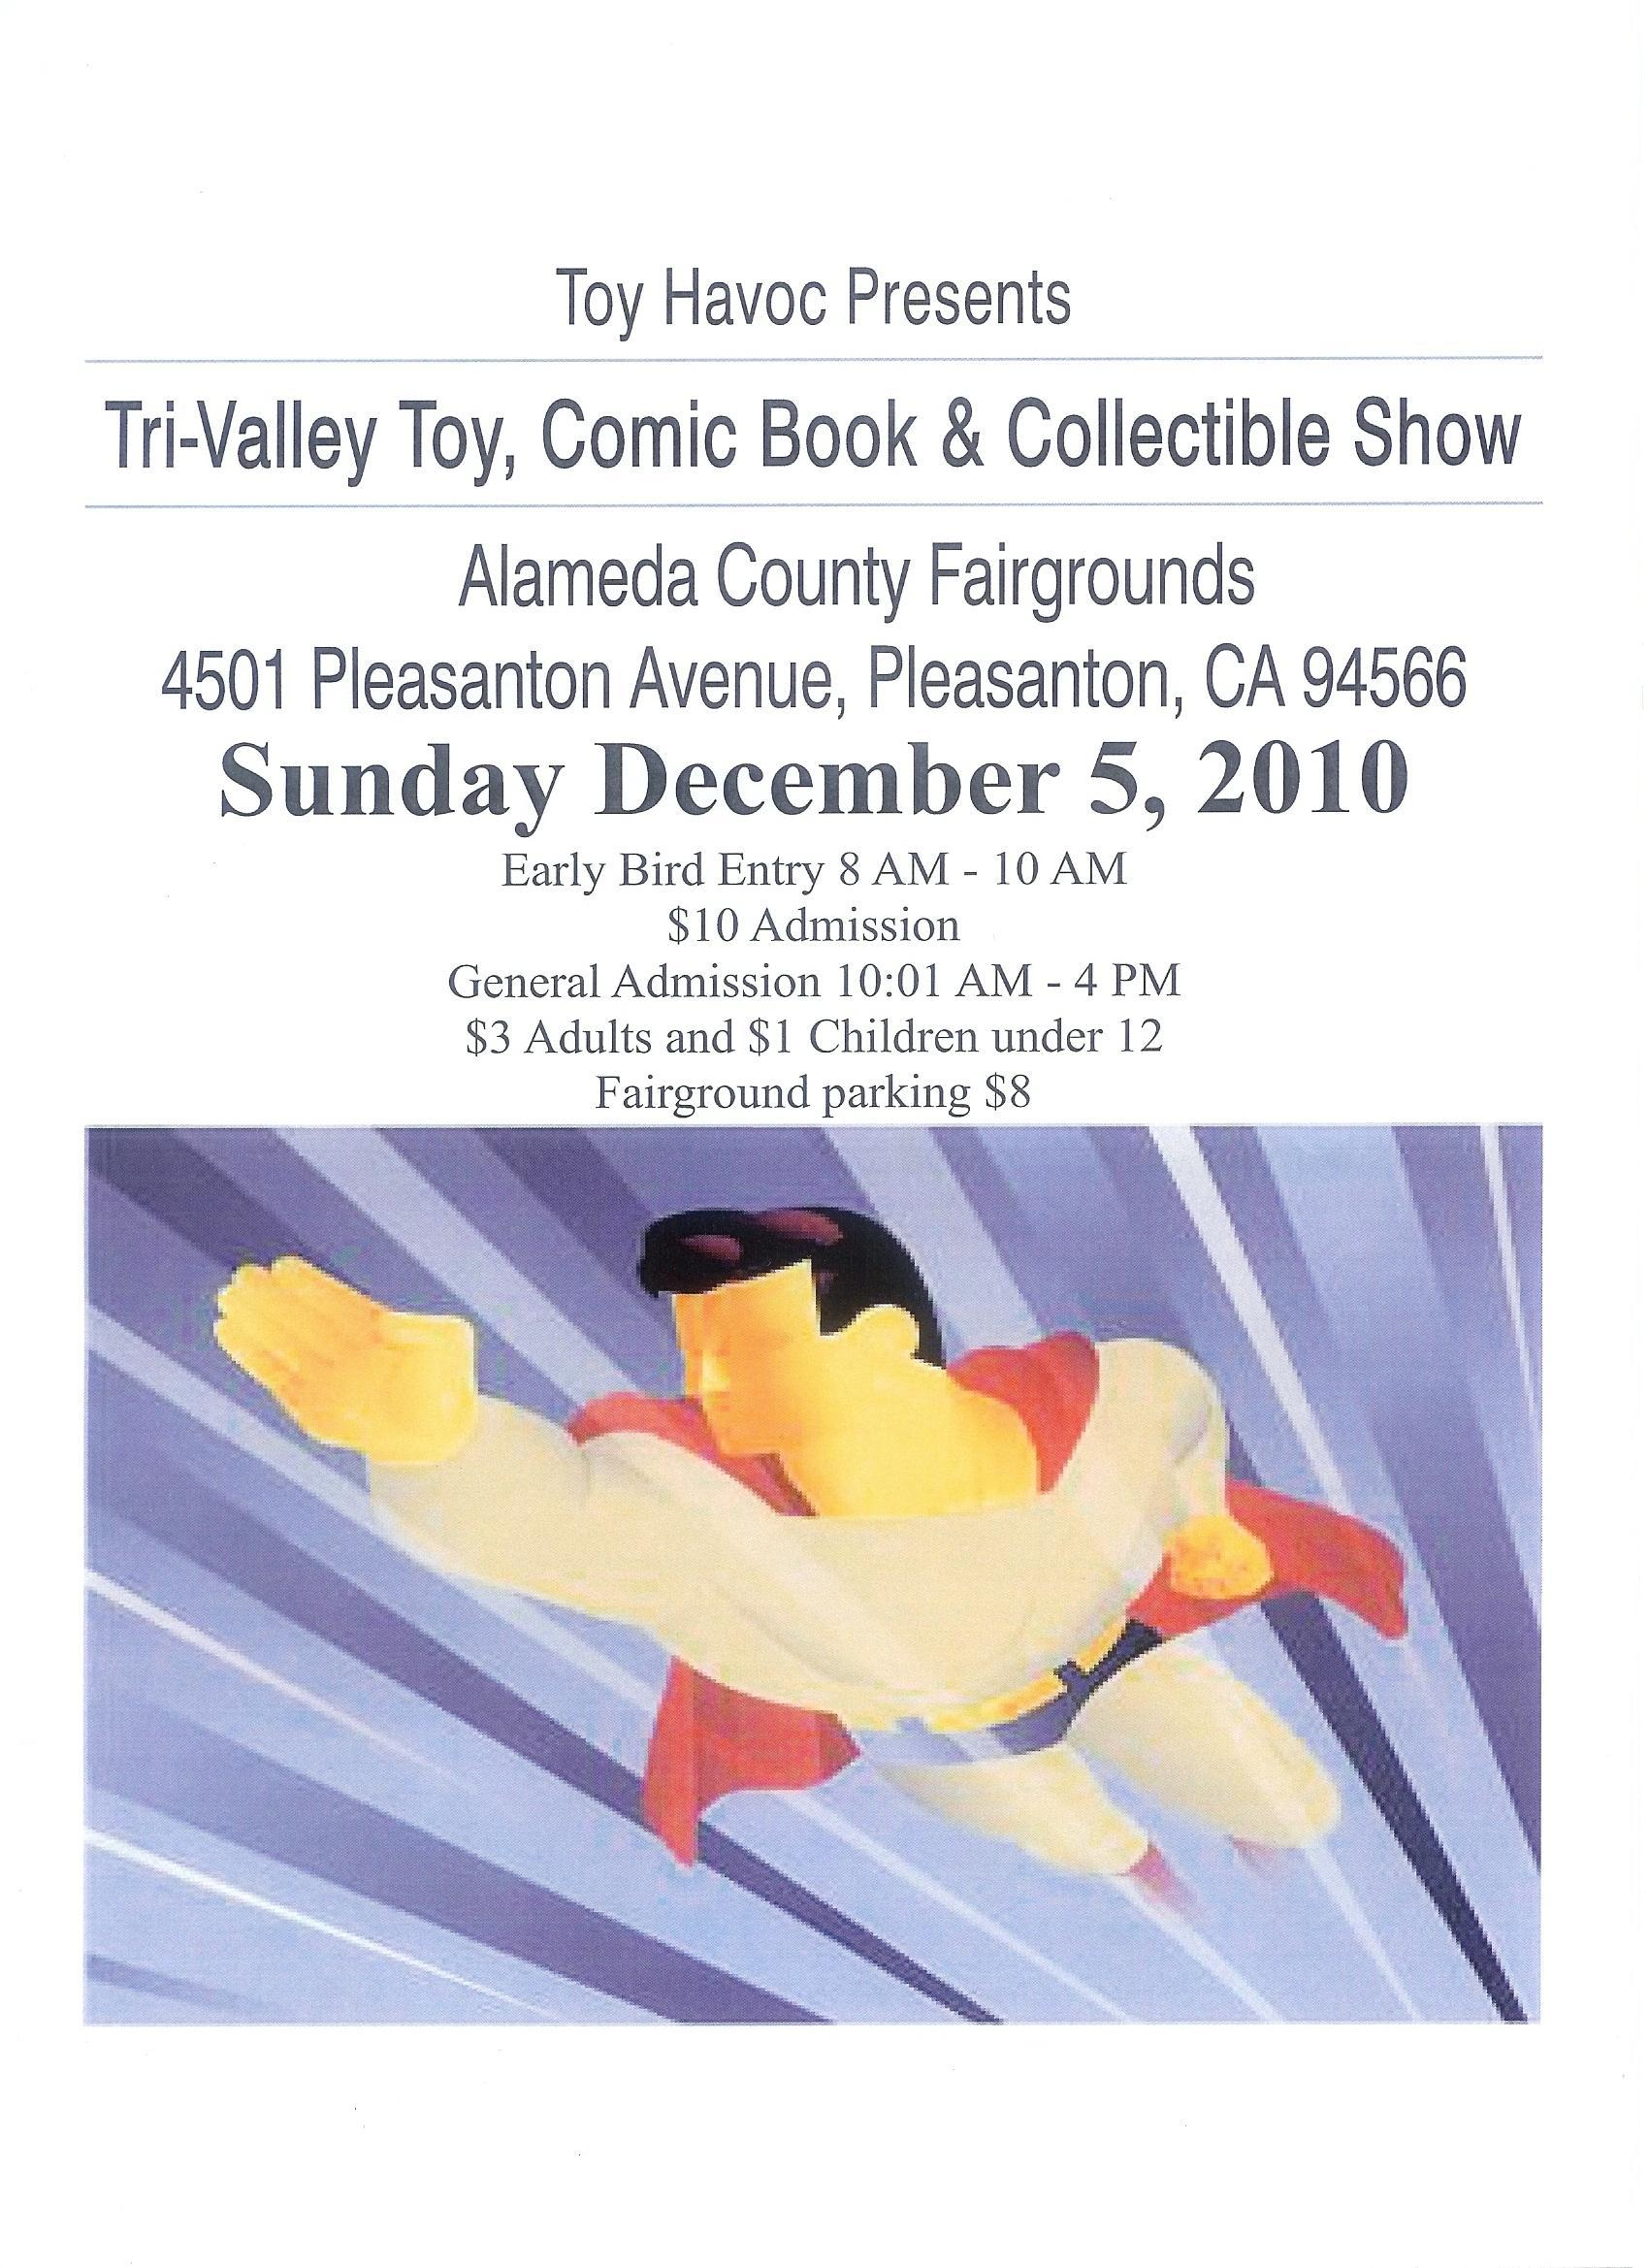 Tri-Valley Toy, Comic Book & Collectible Show flyer